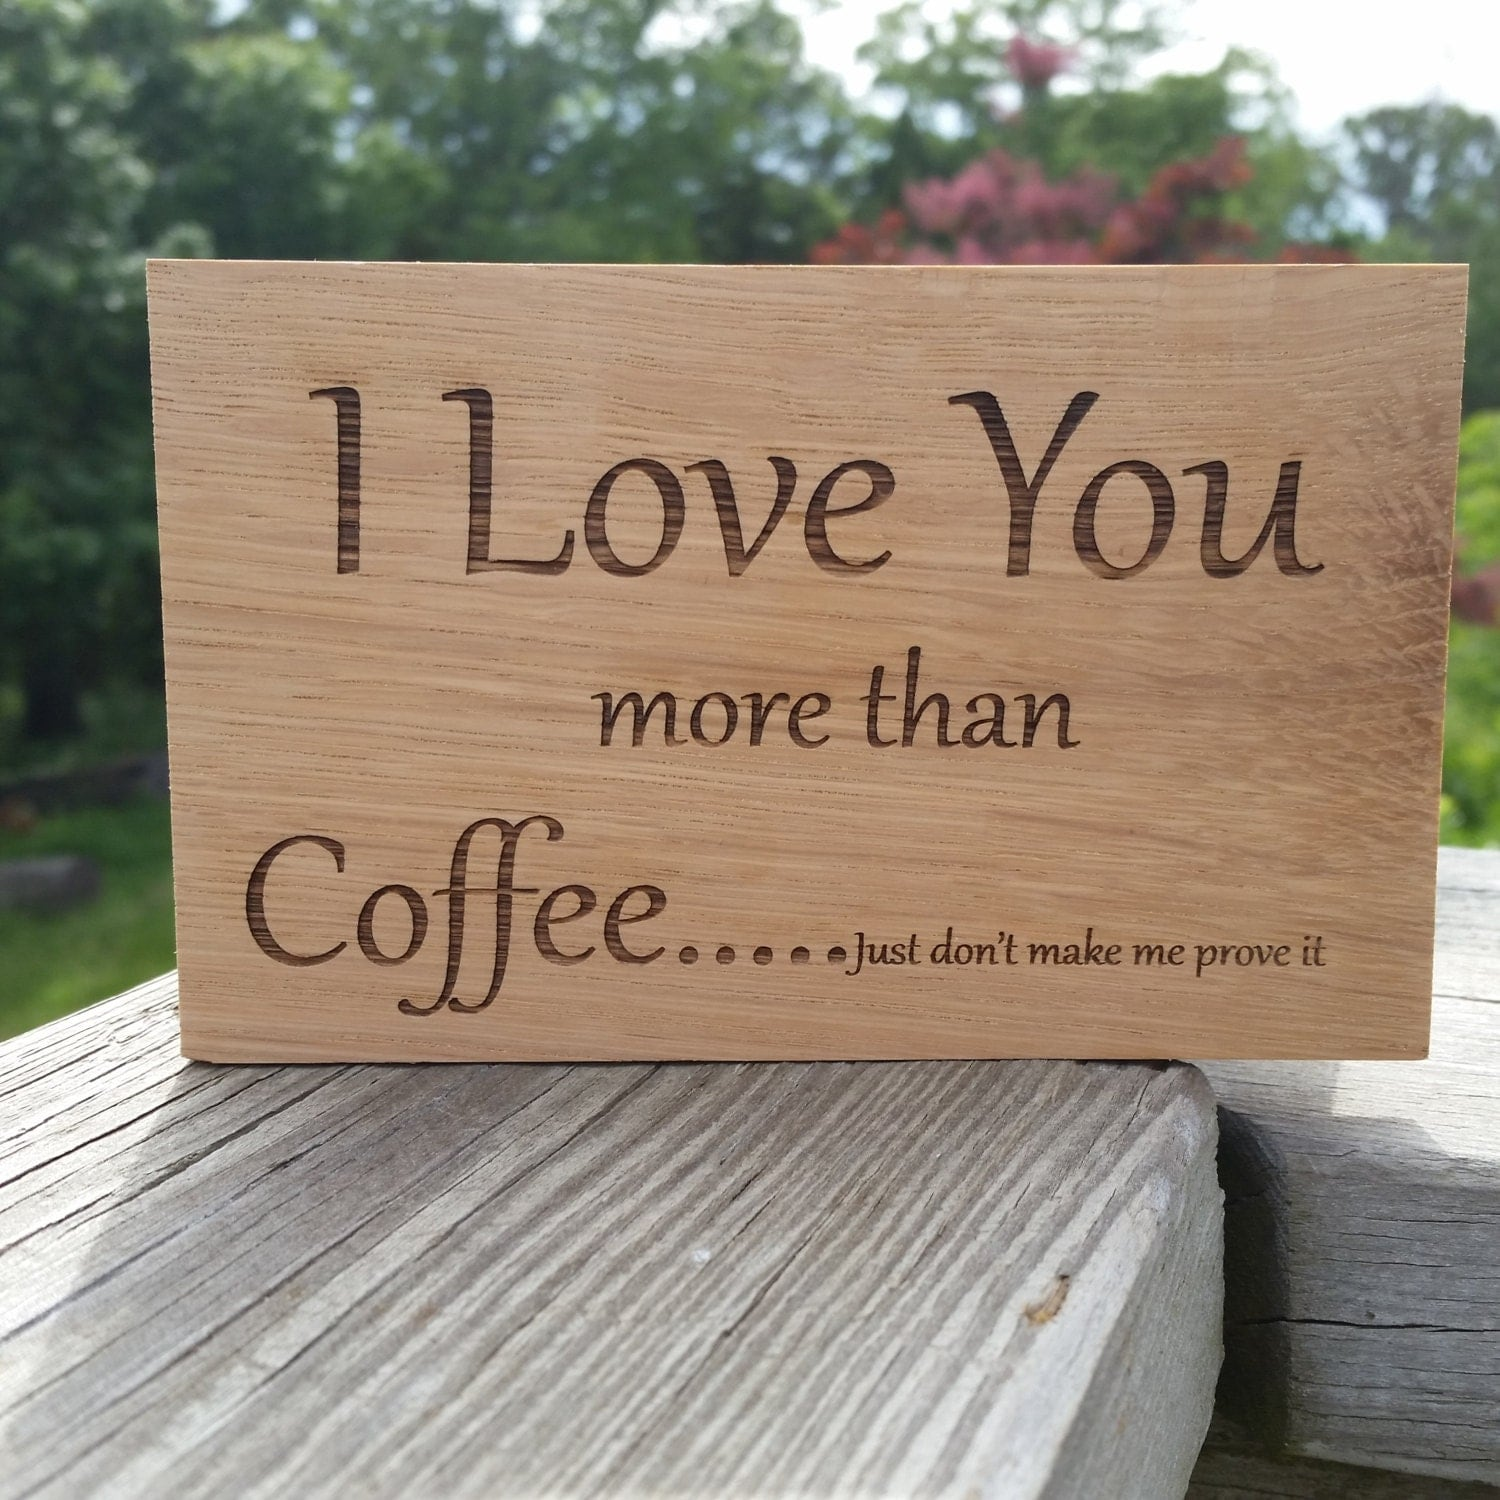 I Love You More Than Coffee: I Love You More Than Coffee Engraved Wood Plaque Wooden